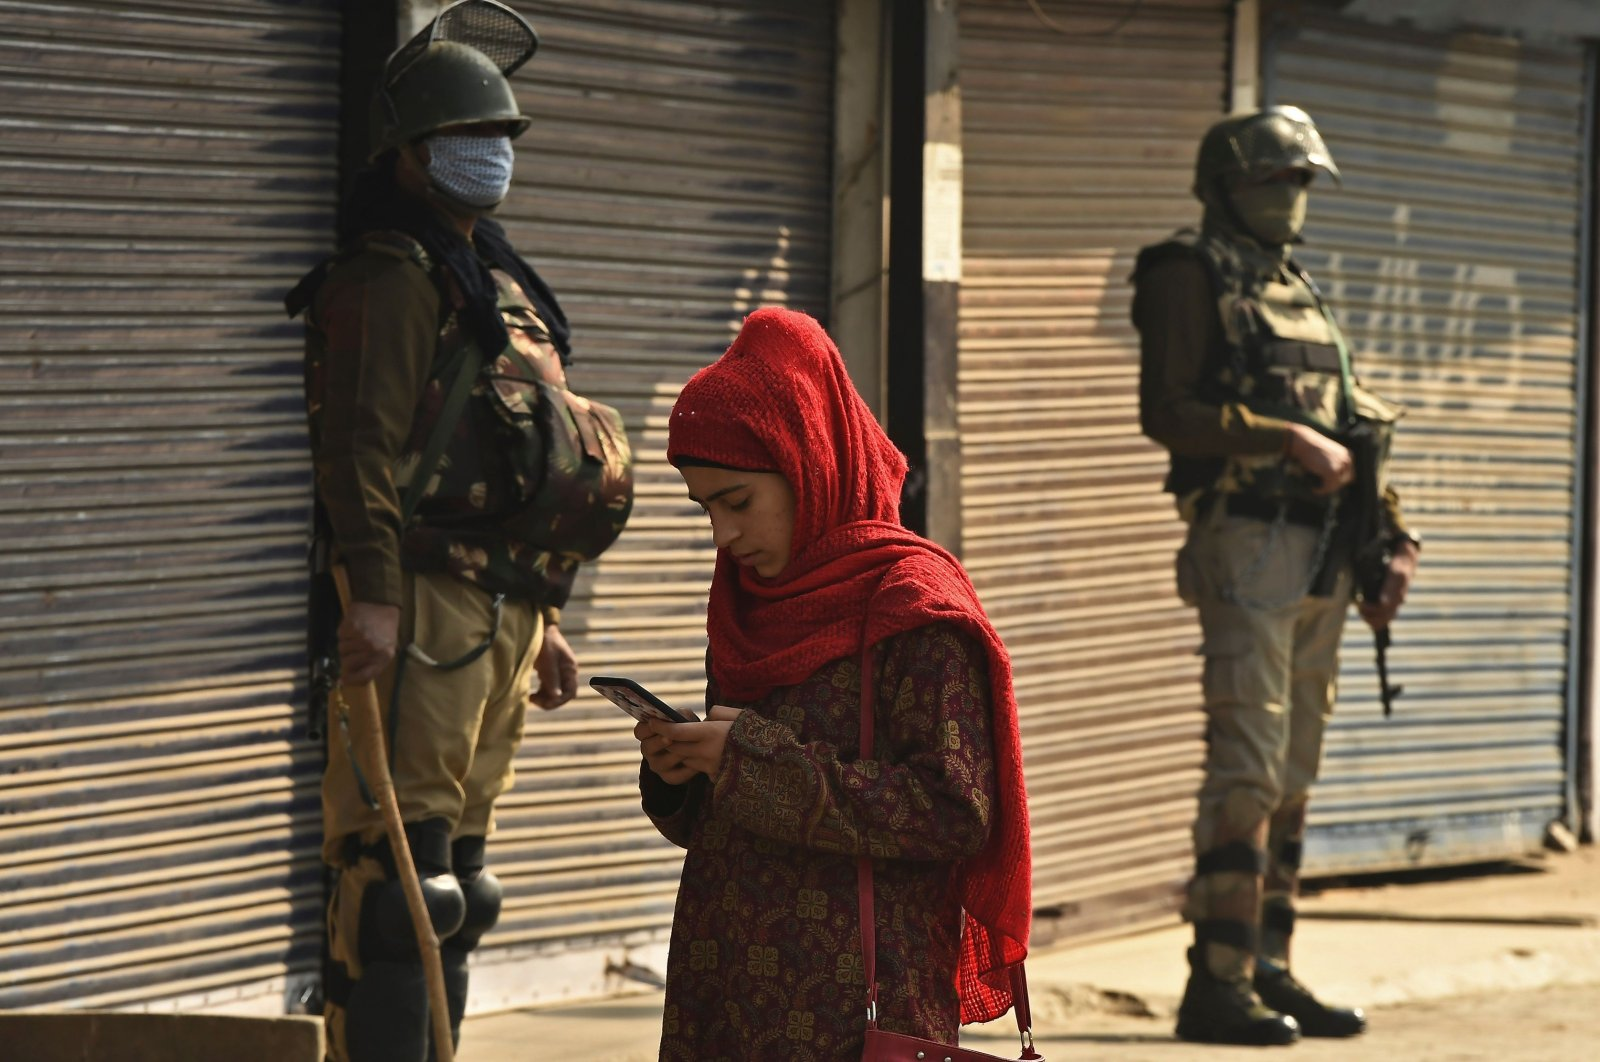 A resident walks past Indian army soldiers standing guard next to closed shops during a one-day strike called by the All Parties Hurriyat Conference (APHC) against the Indian government's decision to open Kashmir land for all Indians, in Srinagar, Jammu and Kashmir, India, Oct. 31, 2020. (AFP Photo)